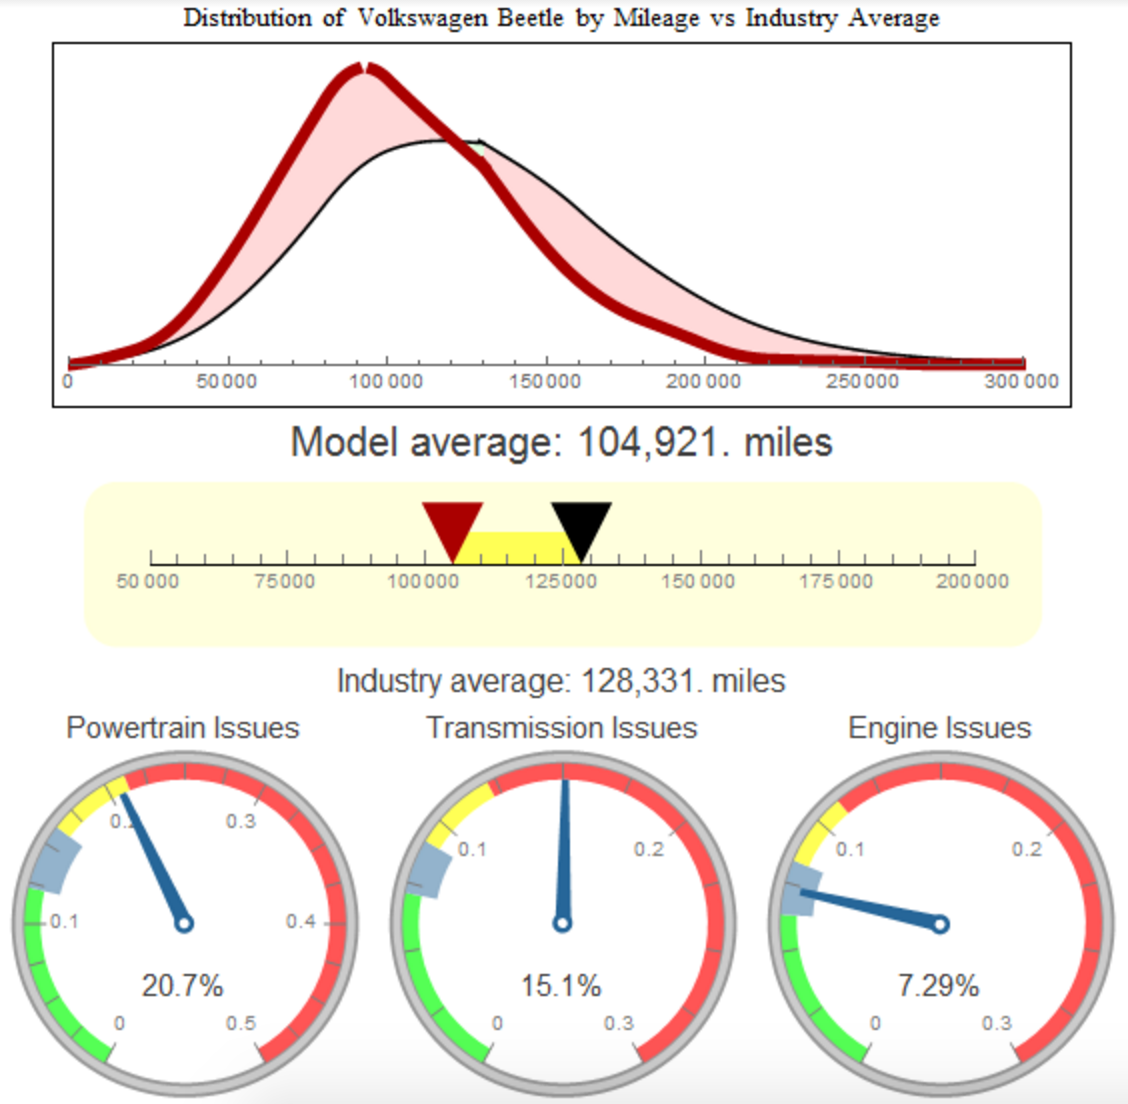 DISTRIBUTION OF THE VOLKSWAGEN BEETLE BY MILEAGE